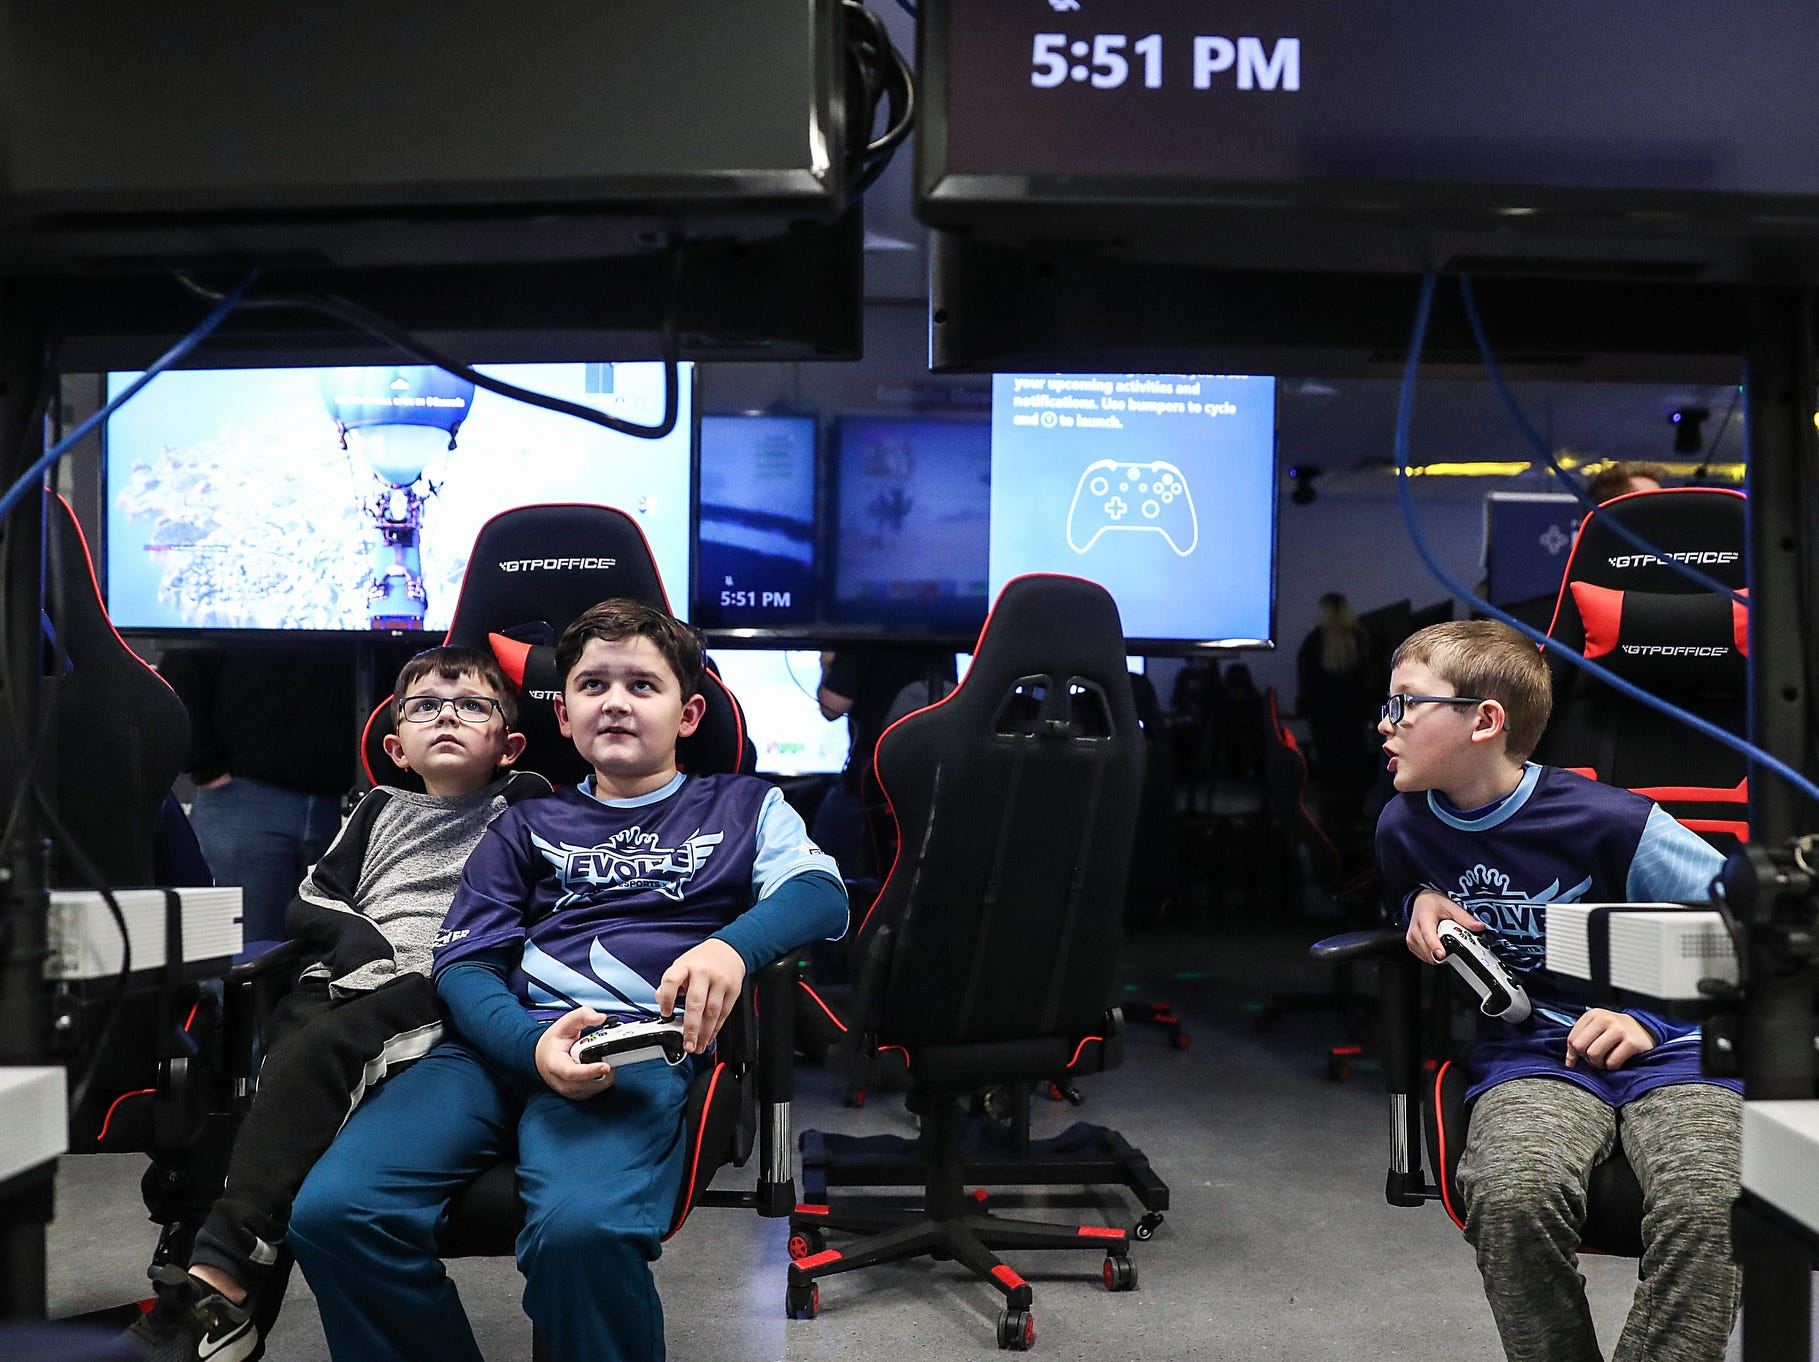 Kids participate in an Evolve Youth Esports practice at the Player One arena in Carmel, Ind., Thursday, Jan. 24, 2019. Under the supervision of professional esports coaches, members will practice and compete in football, basketball and soccerÊvideo games.